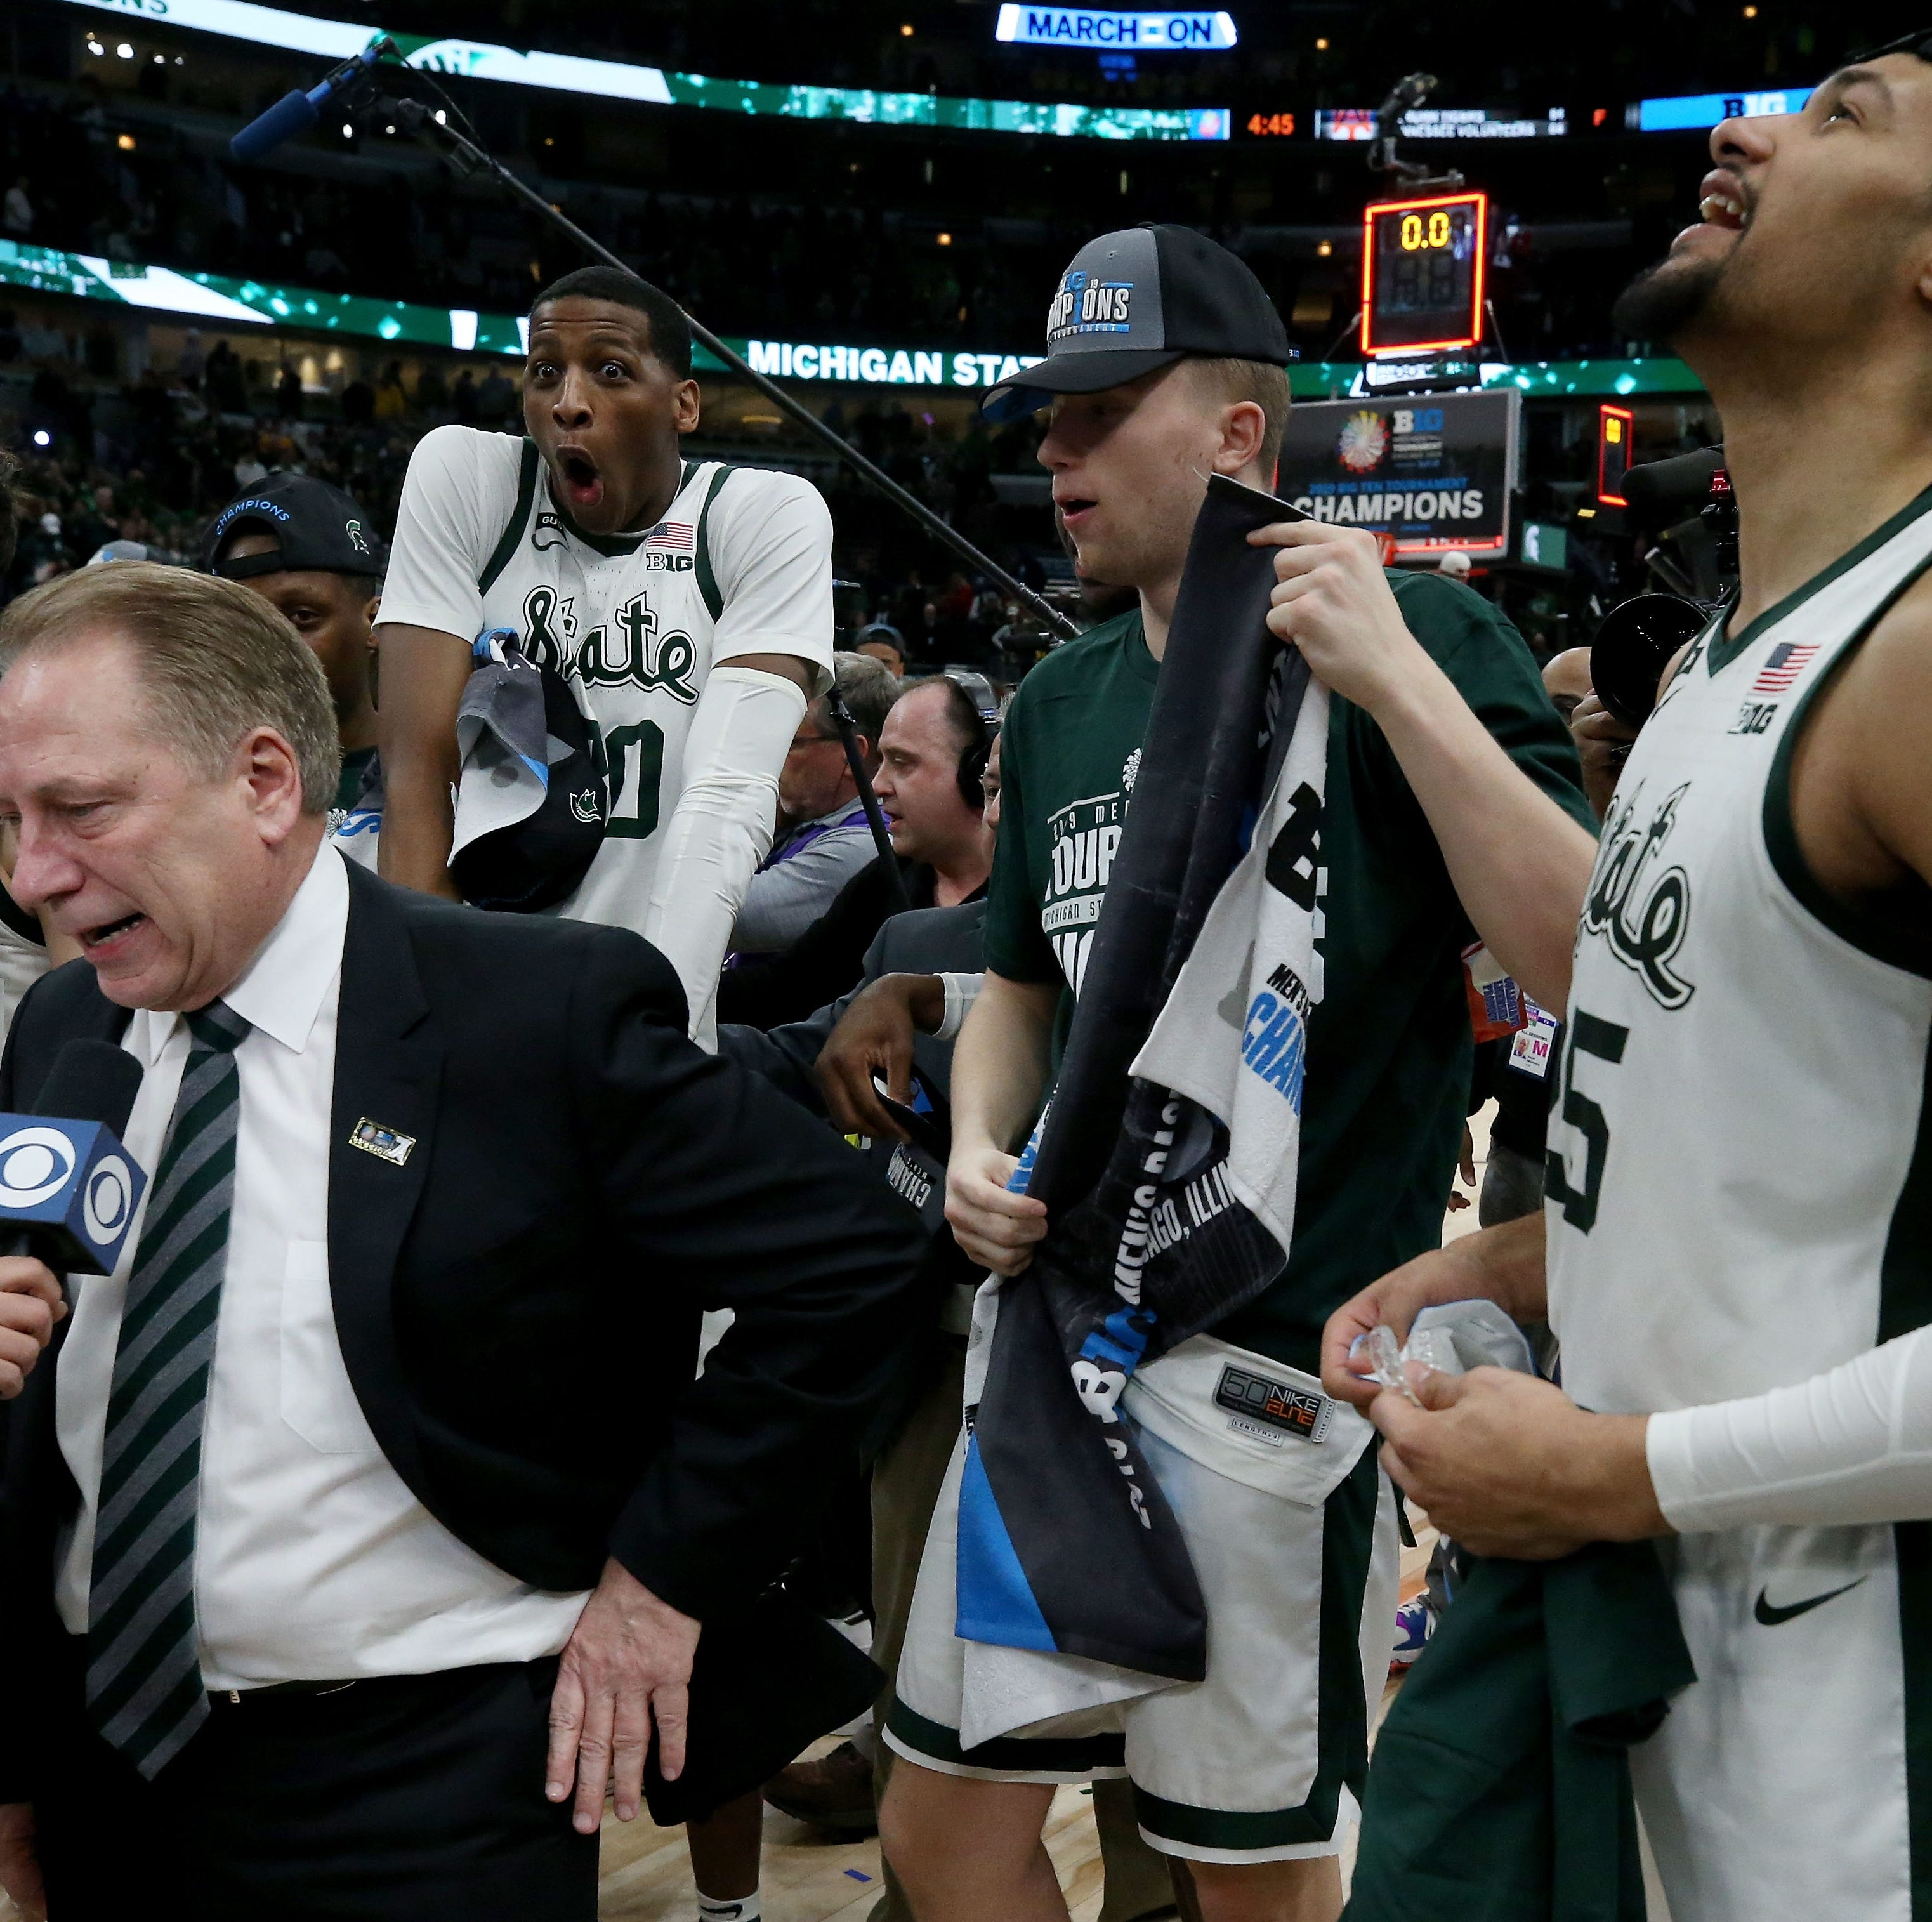 Couch: Here's why this Michigan State basketball team has a shot to reach the Final Four